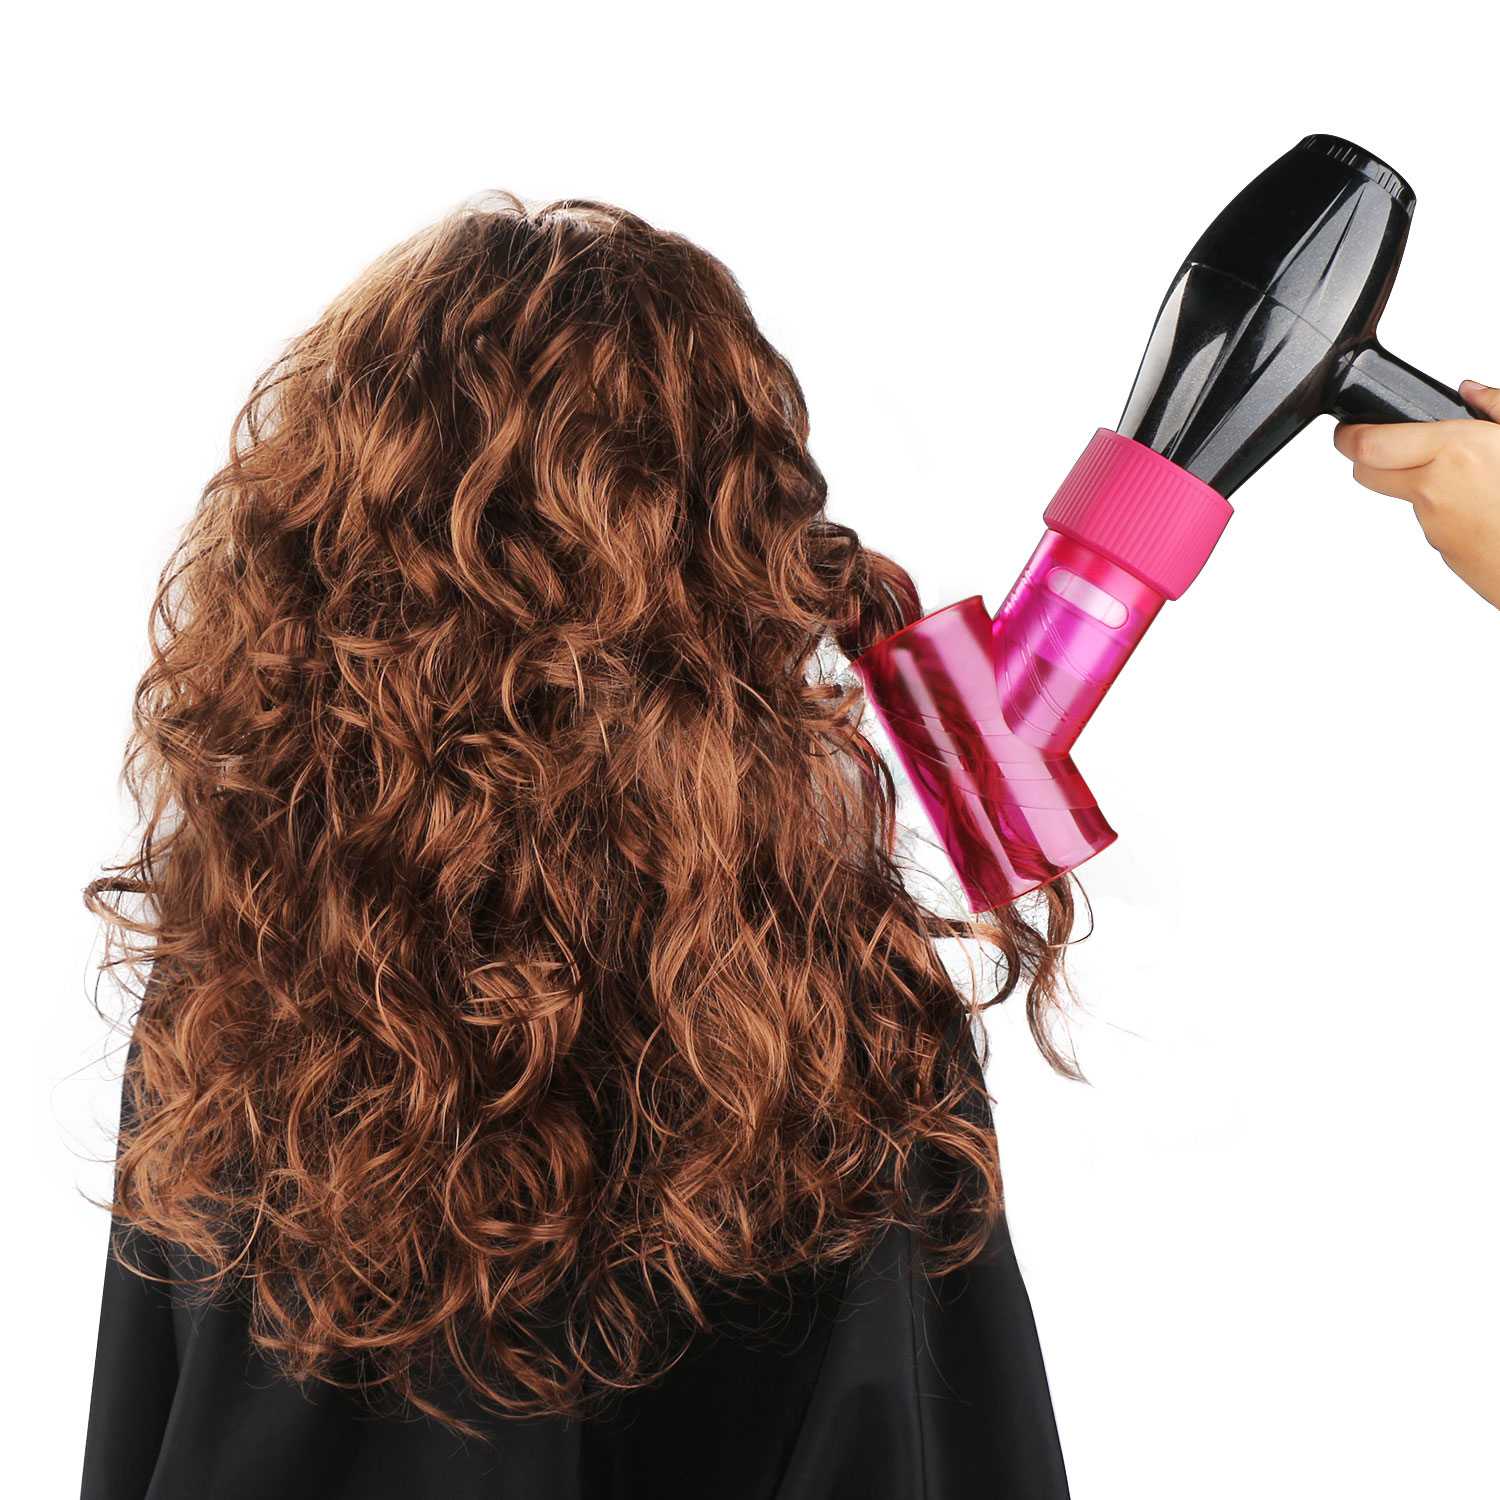 Segbeauty Wind Spin Hair Dryer Diffuser for Curly Wavy Permed Hair ...